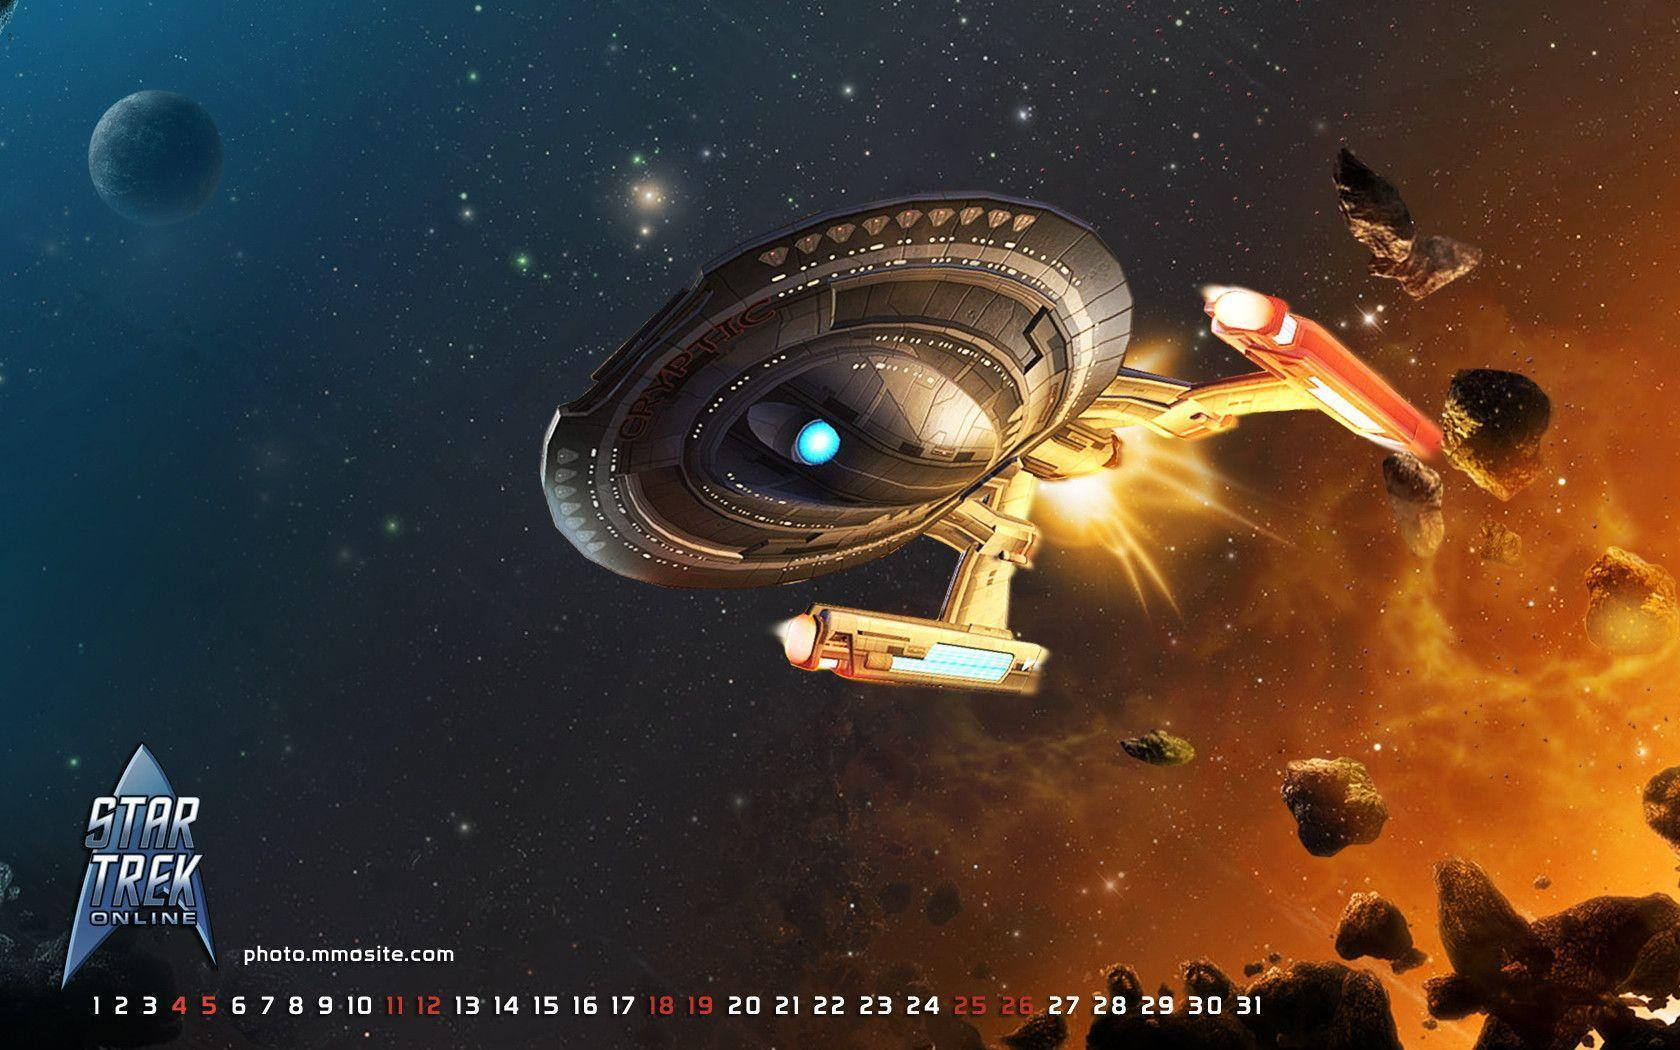 Star Trek Online Wallpapers 1680x1050